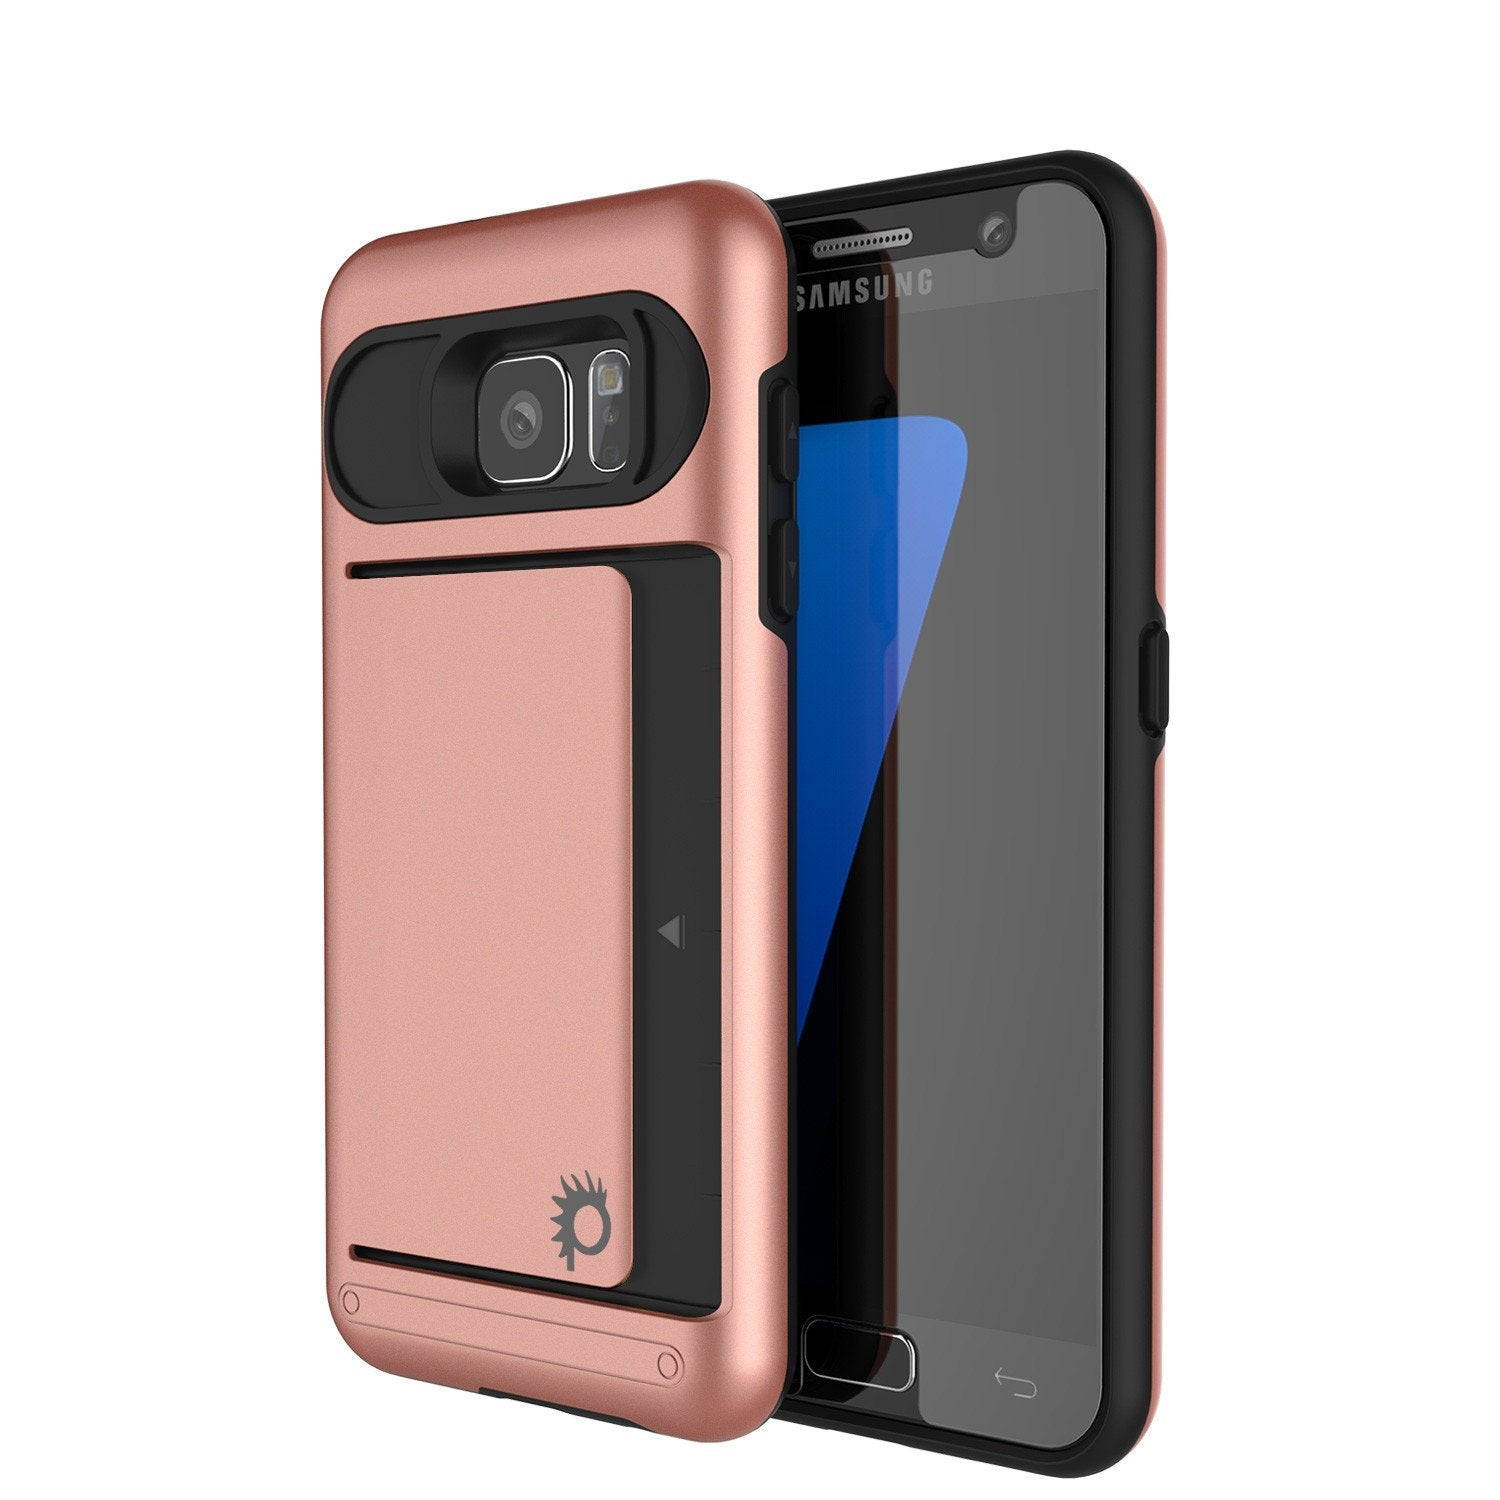 Galaxy s7 Case PunkCase CLUTCH Rose Gold Series Slim Armor Soft Cover Case w/ Tempered Glass